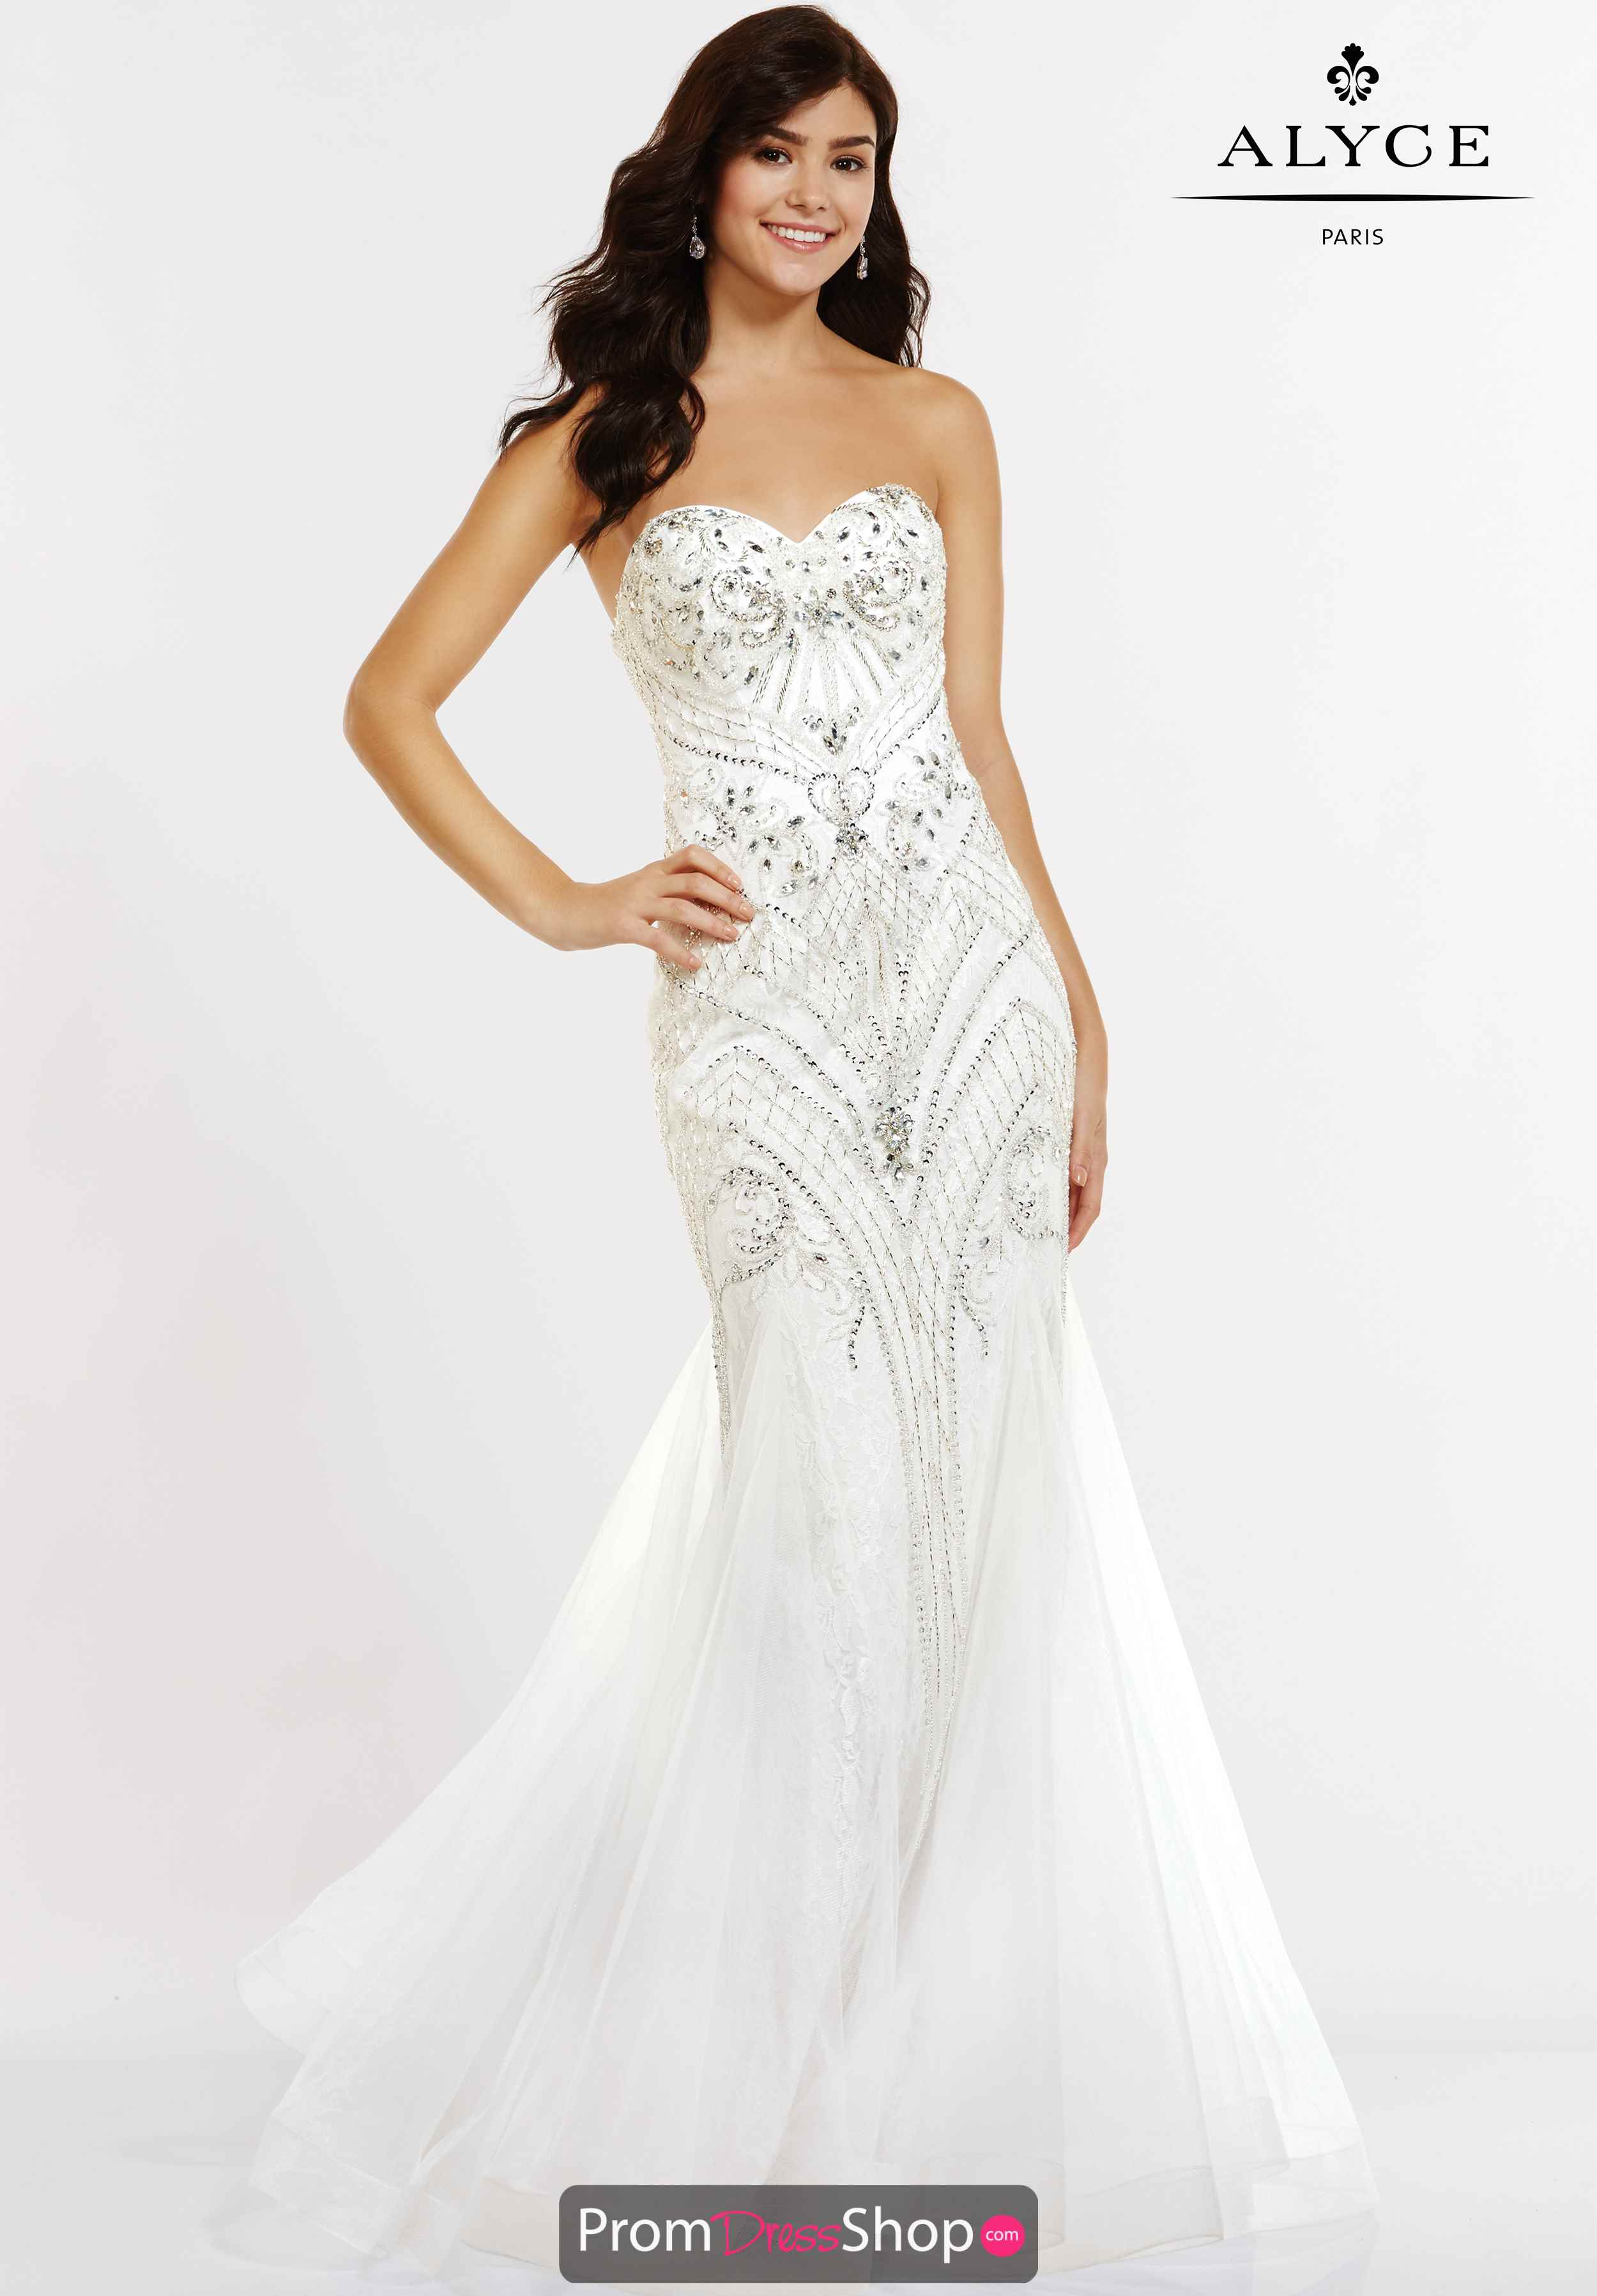 Just For Fun Prom Dress As Wedding Dress